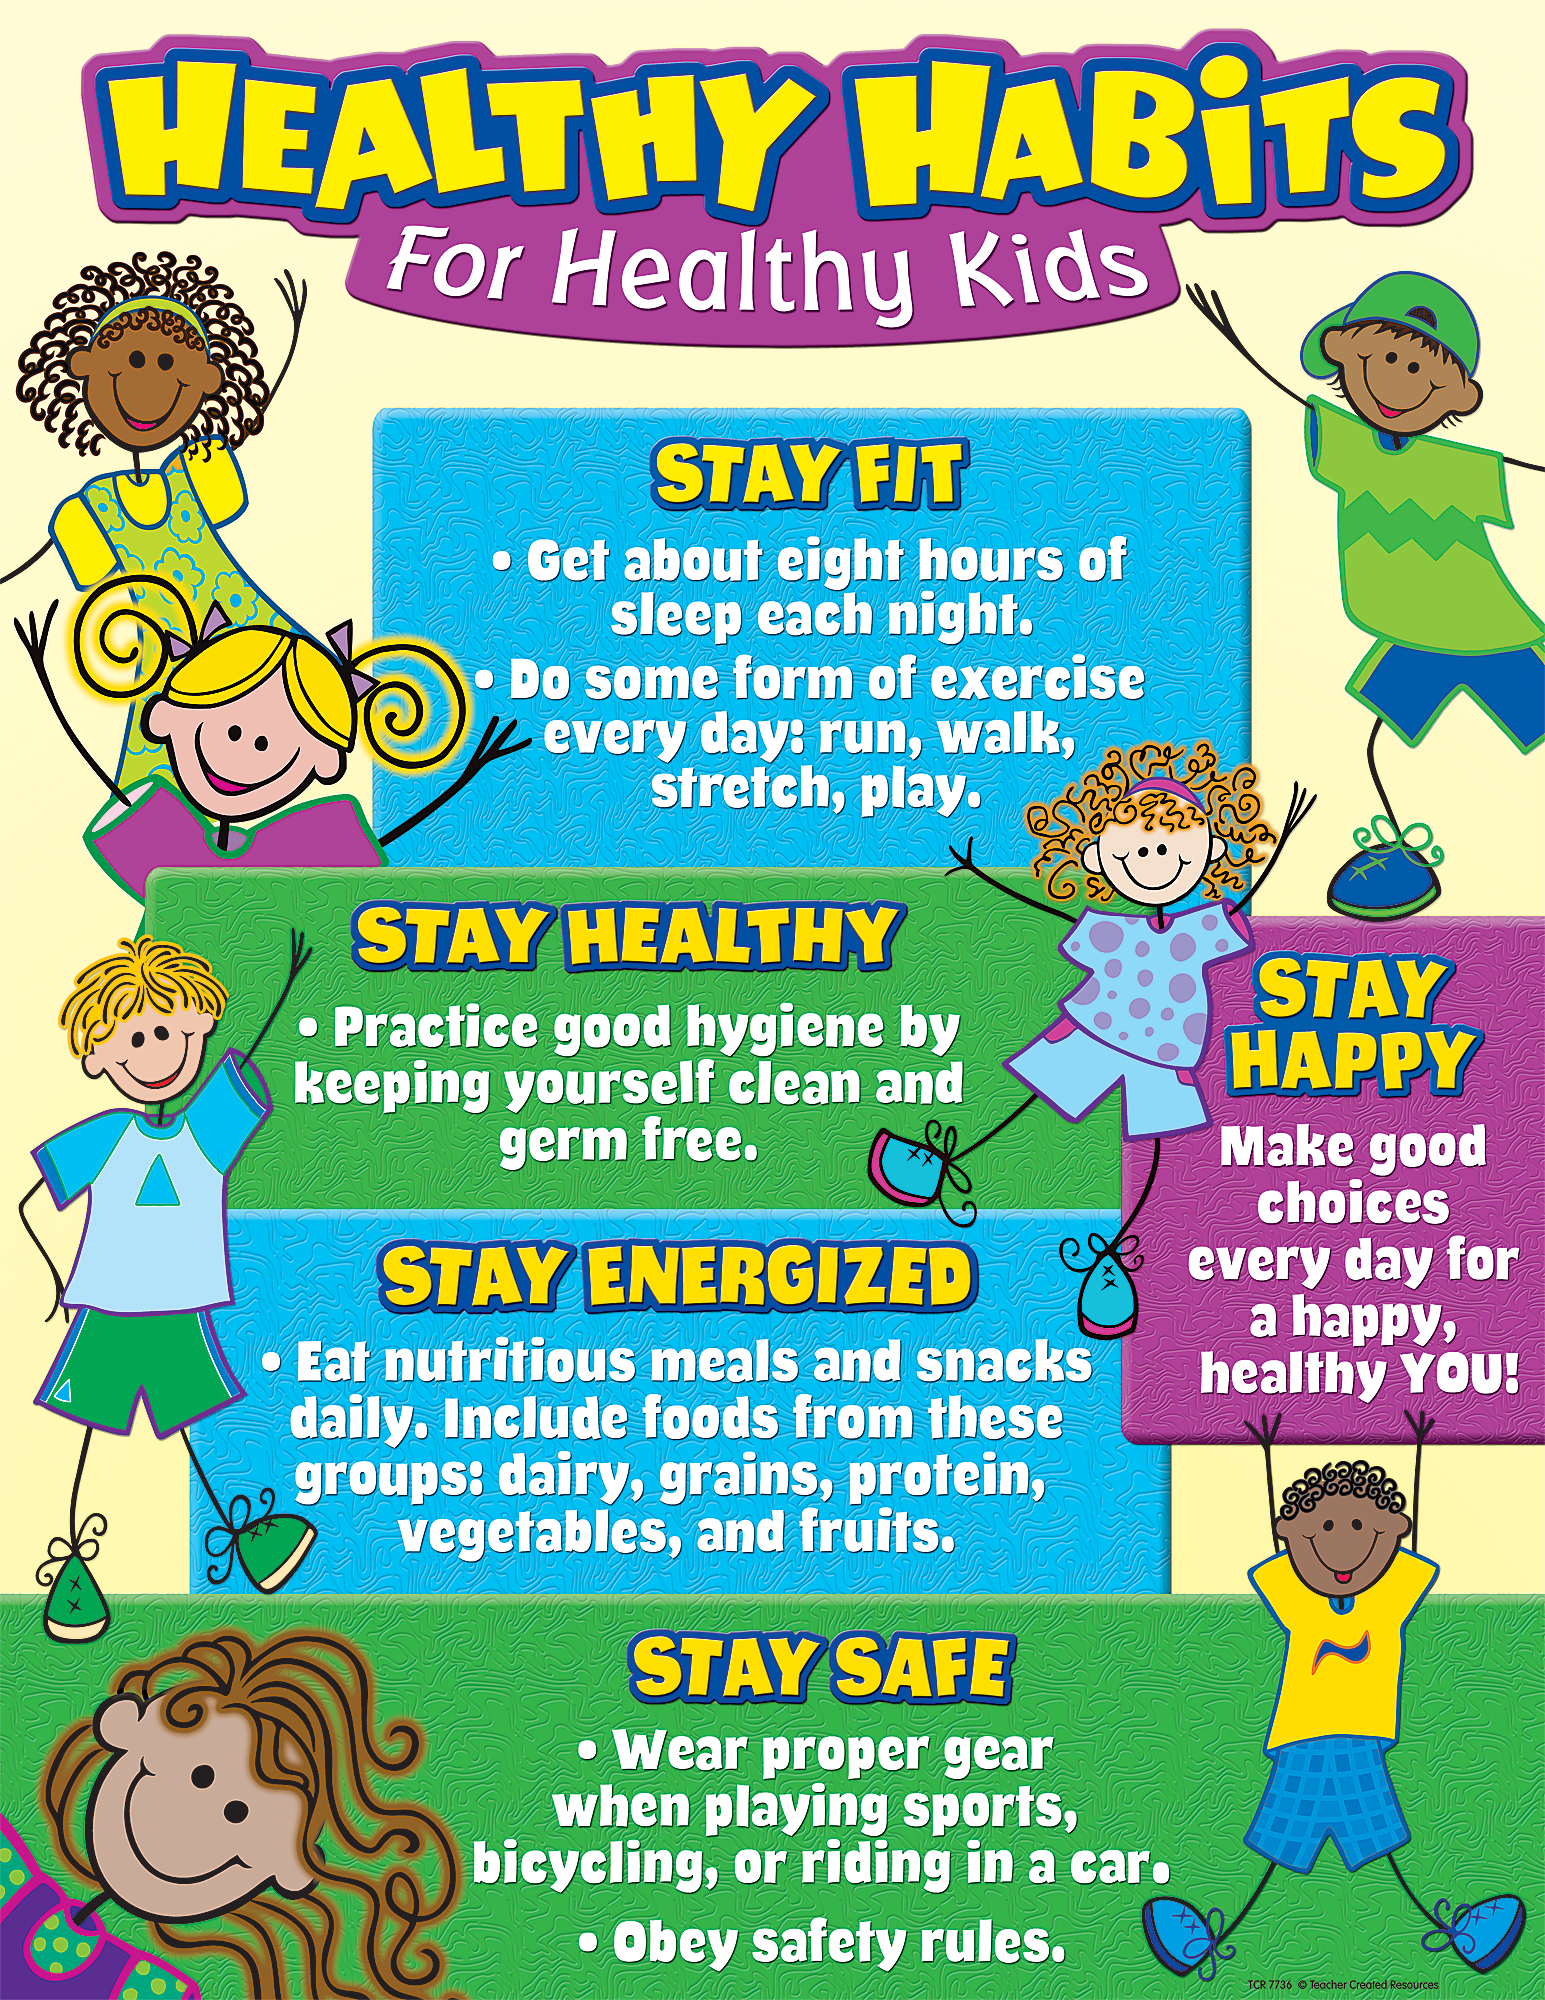 Healthy Habits For Healthy Kids Chart Child Health Safety And